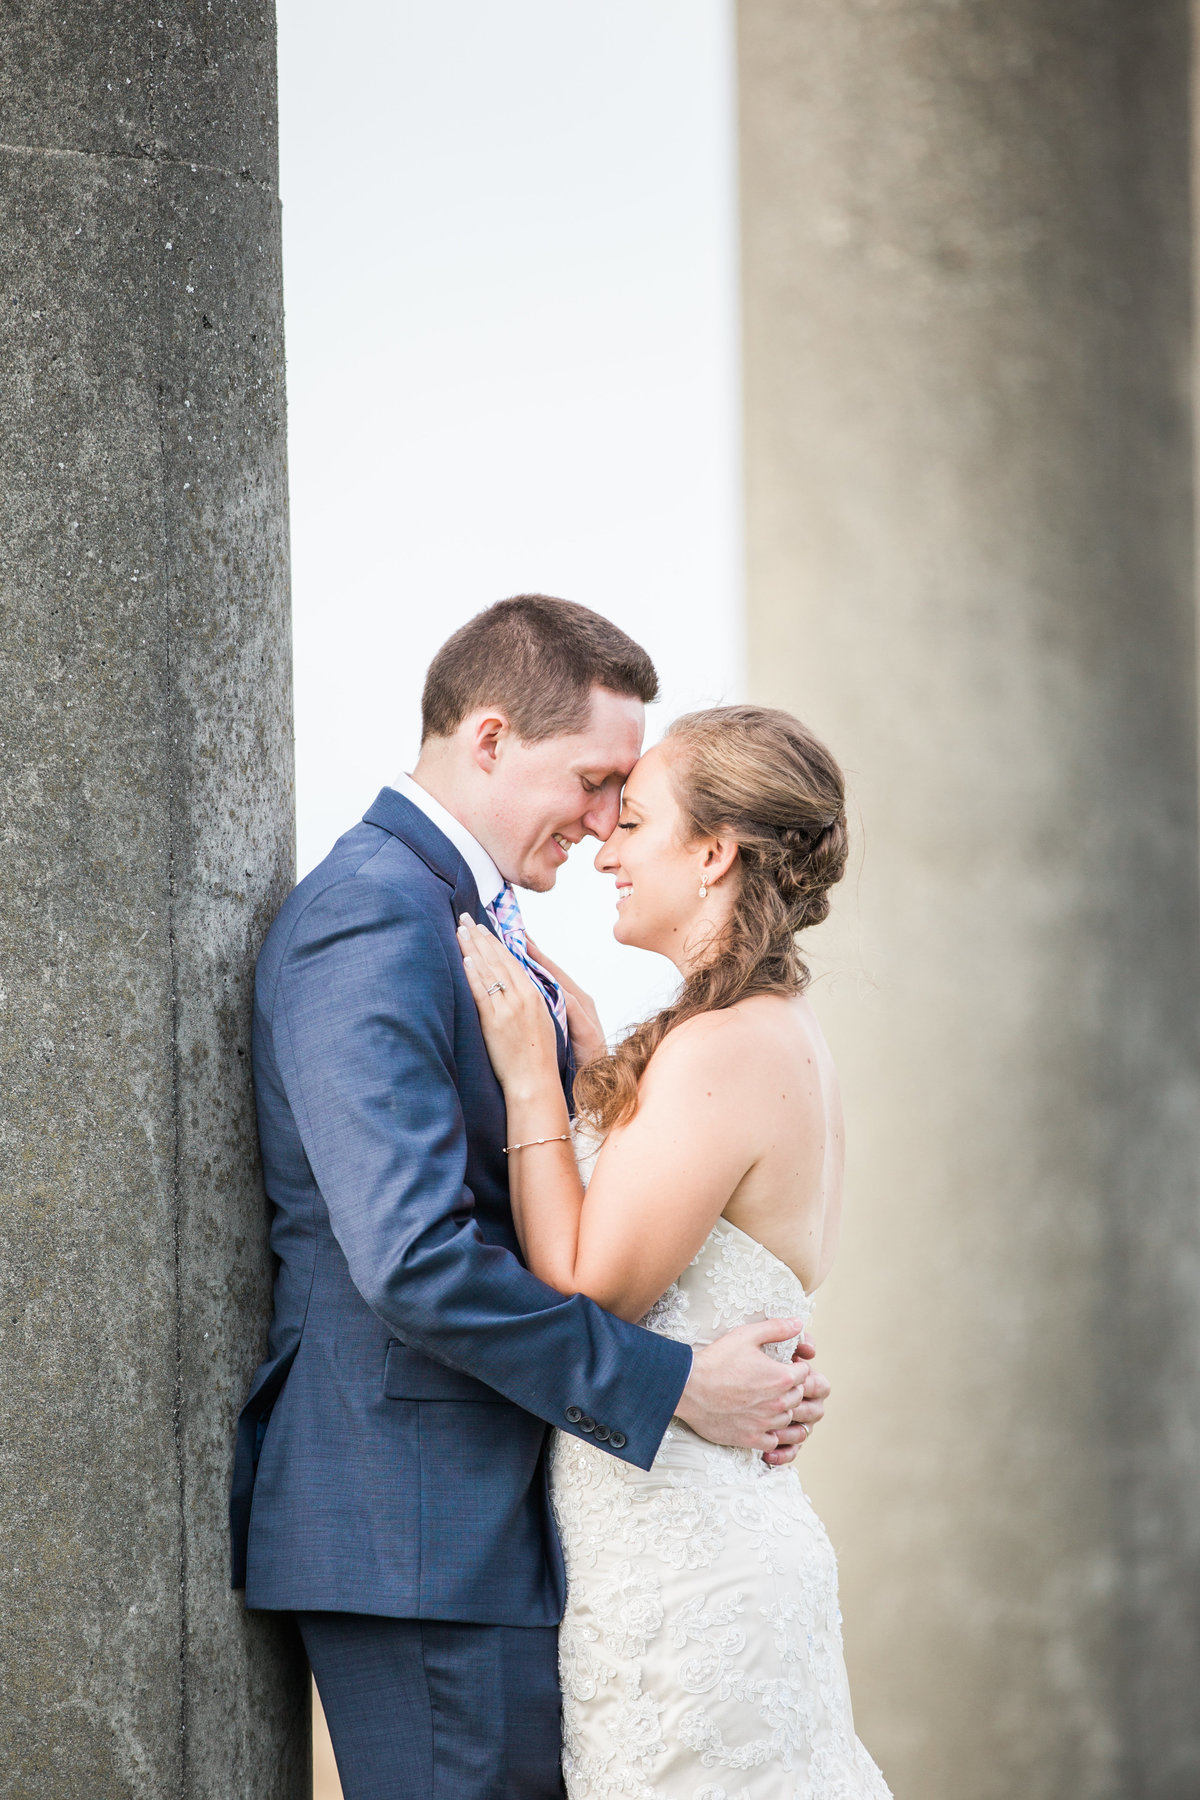 Eva-Rieb-Photography_Katie-Tyler-Second-Shooting-Wedding-335